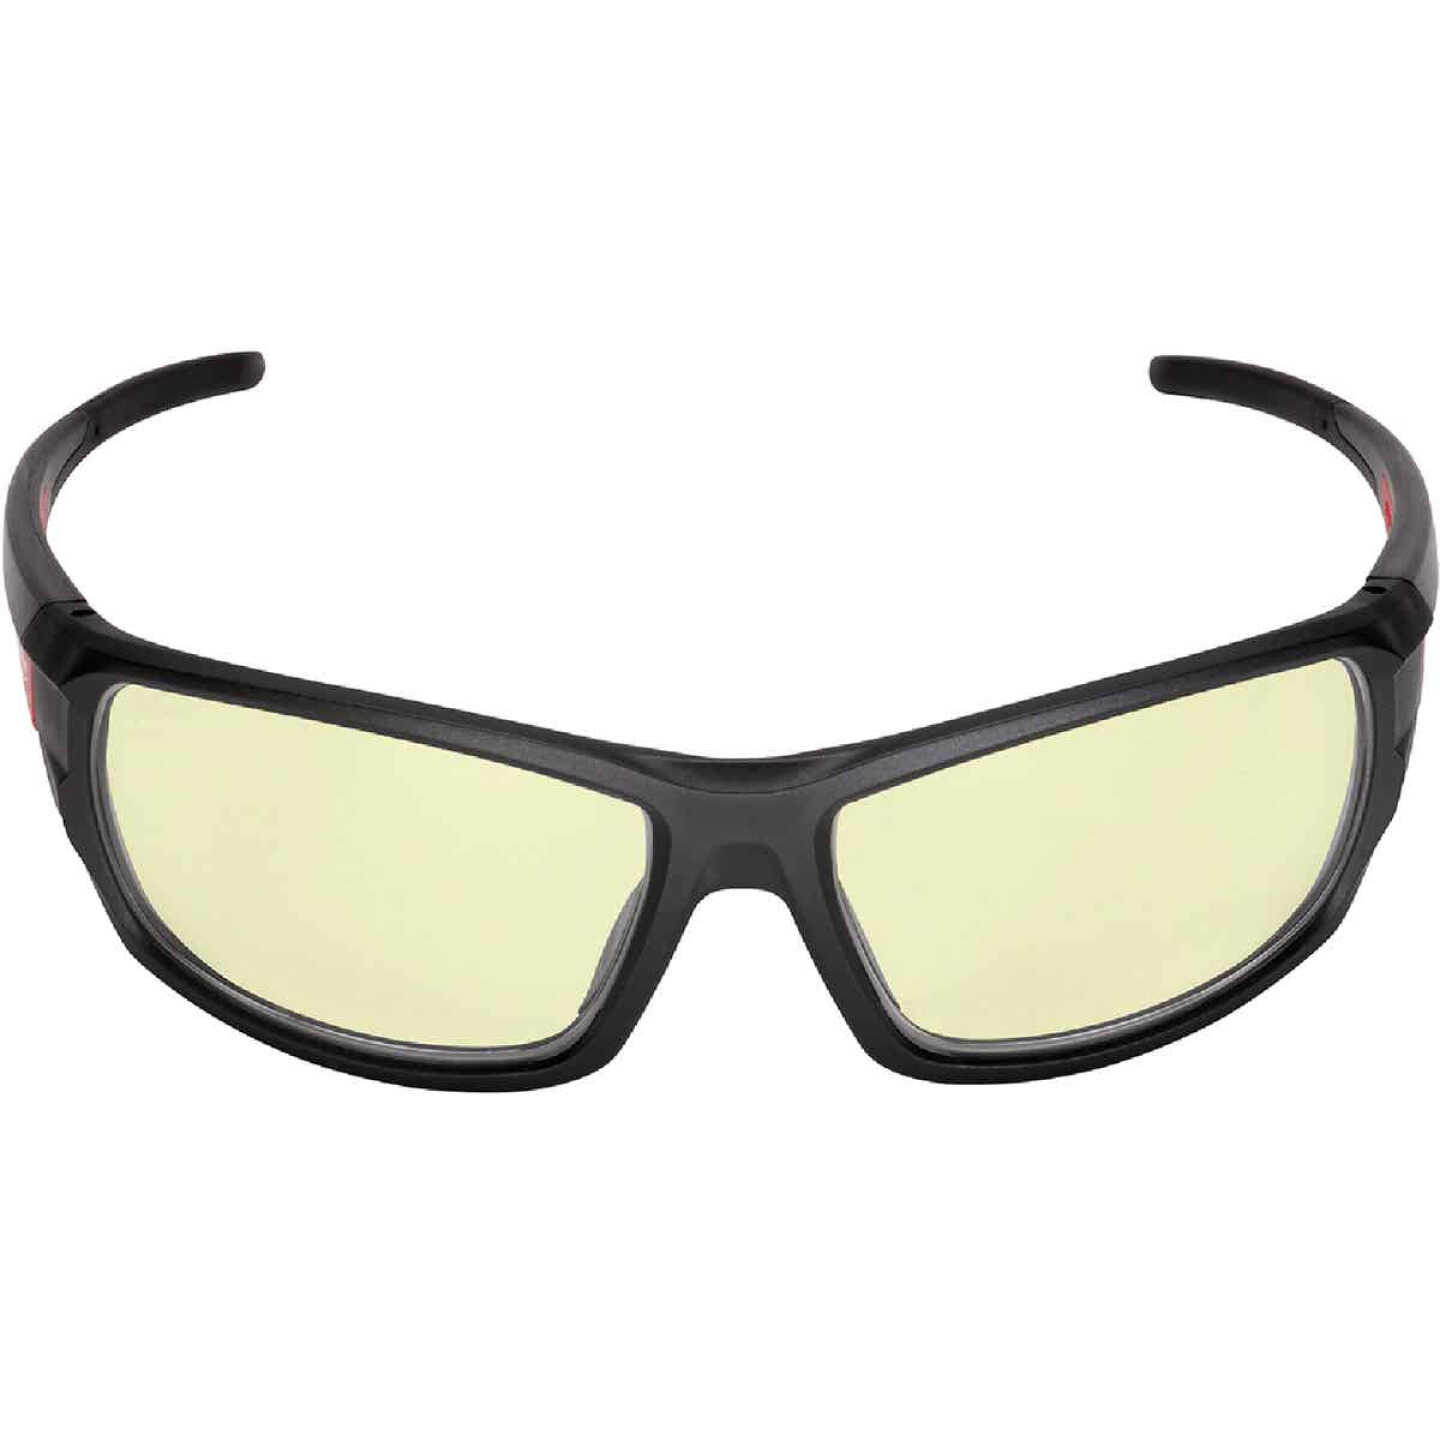 Milwaukee Performance Red & Black Frame Safety Glasses with Yellow Fog-Free Lenses Image 3